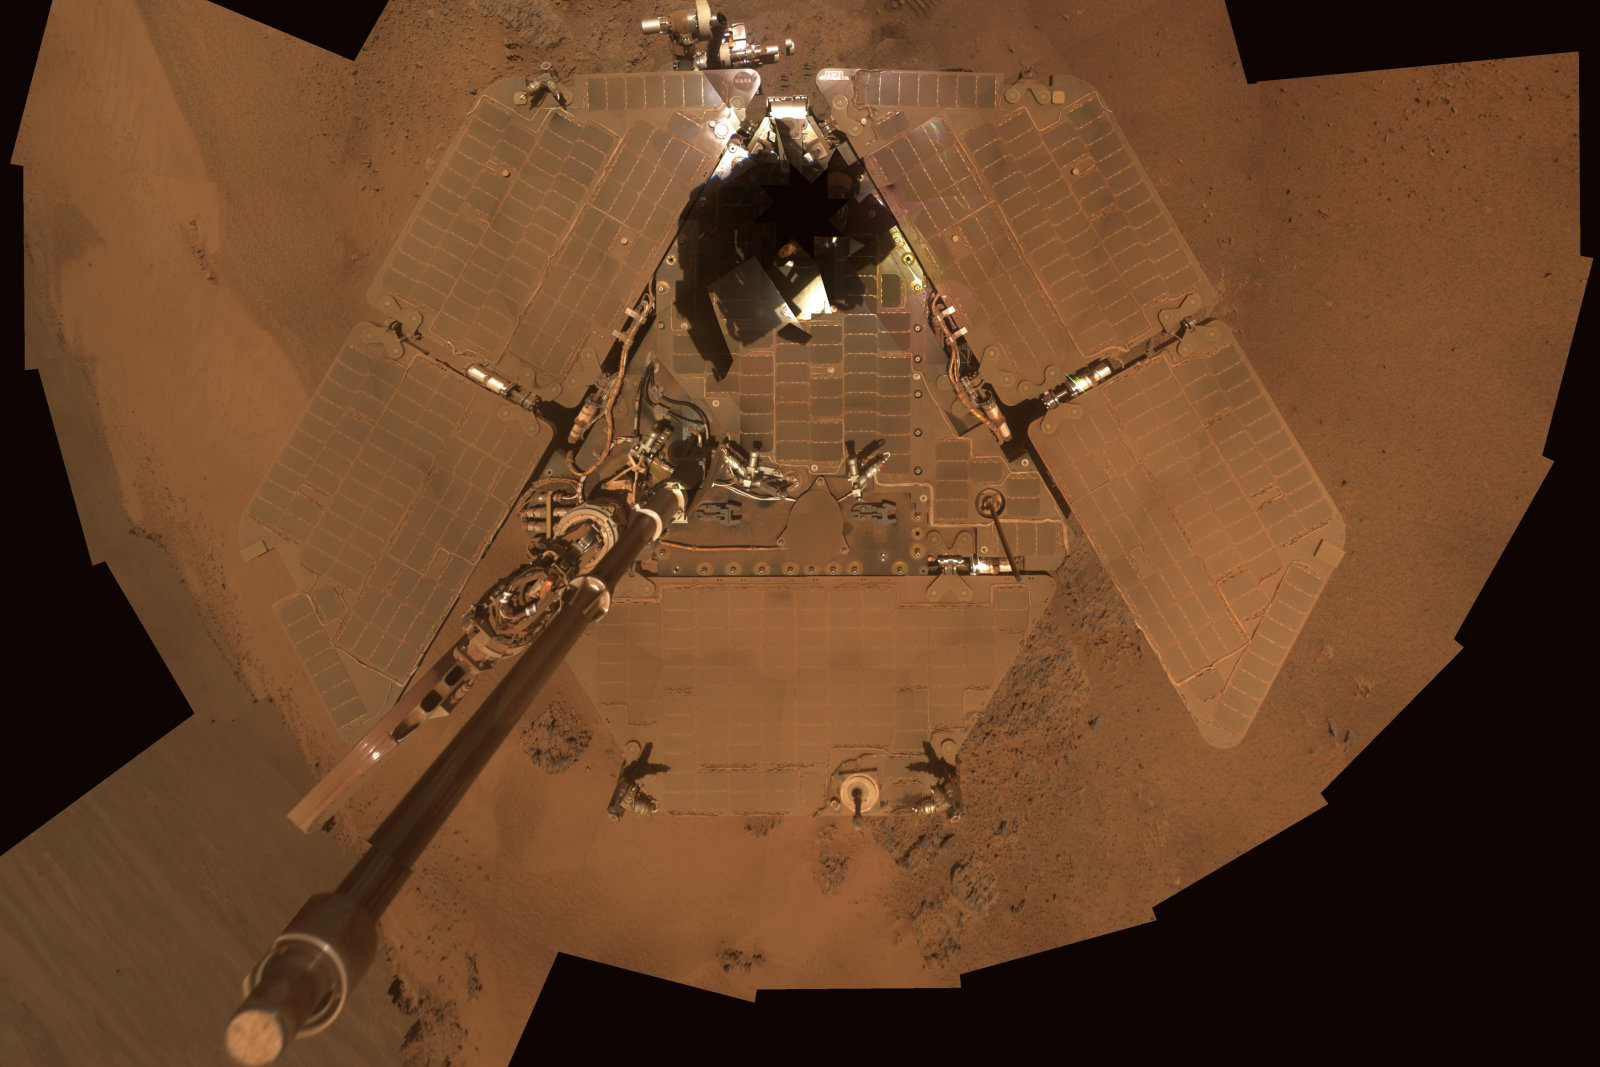 NASA handout image shows a self portrait from the Mars Exploration Rover Opportunity covered in dust as the mission approached its fifth Martian winter, December 21 to 24, 2011. This is a mosaic of images taken by Opportunity's panoramic camera (Pancam) during the 2,111th to 2,814th Martian days, or sols. The downward-looking view omits the mast on which the camera is mounted. REUTERS/NASA/JPL-Caltech/Cornell/Arizona State University/Handout (SCIENCE TECHNOLOGY ENVIRONMENT) FOR EDITORIAL USE ONLY. NOT FOR SALE FOR MARKETING OR ADVERTISING CAMPAIGNS. THIS IMAGE HAS BEEN SUPPLIED BY A THIRD PARTY. IT IS DISTRIBUTED, EXACTLY AS RECEIVED BY REUTERS, AS A SERVICE TO CLIENTS